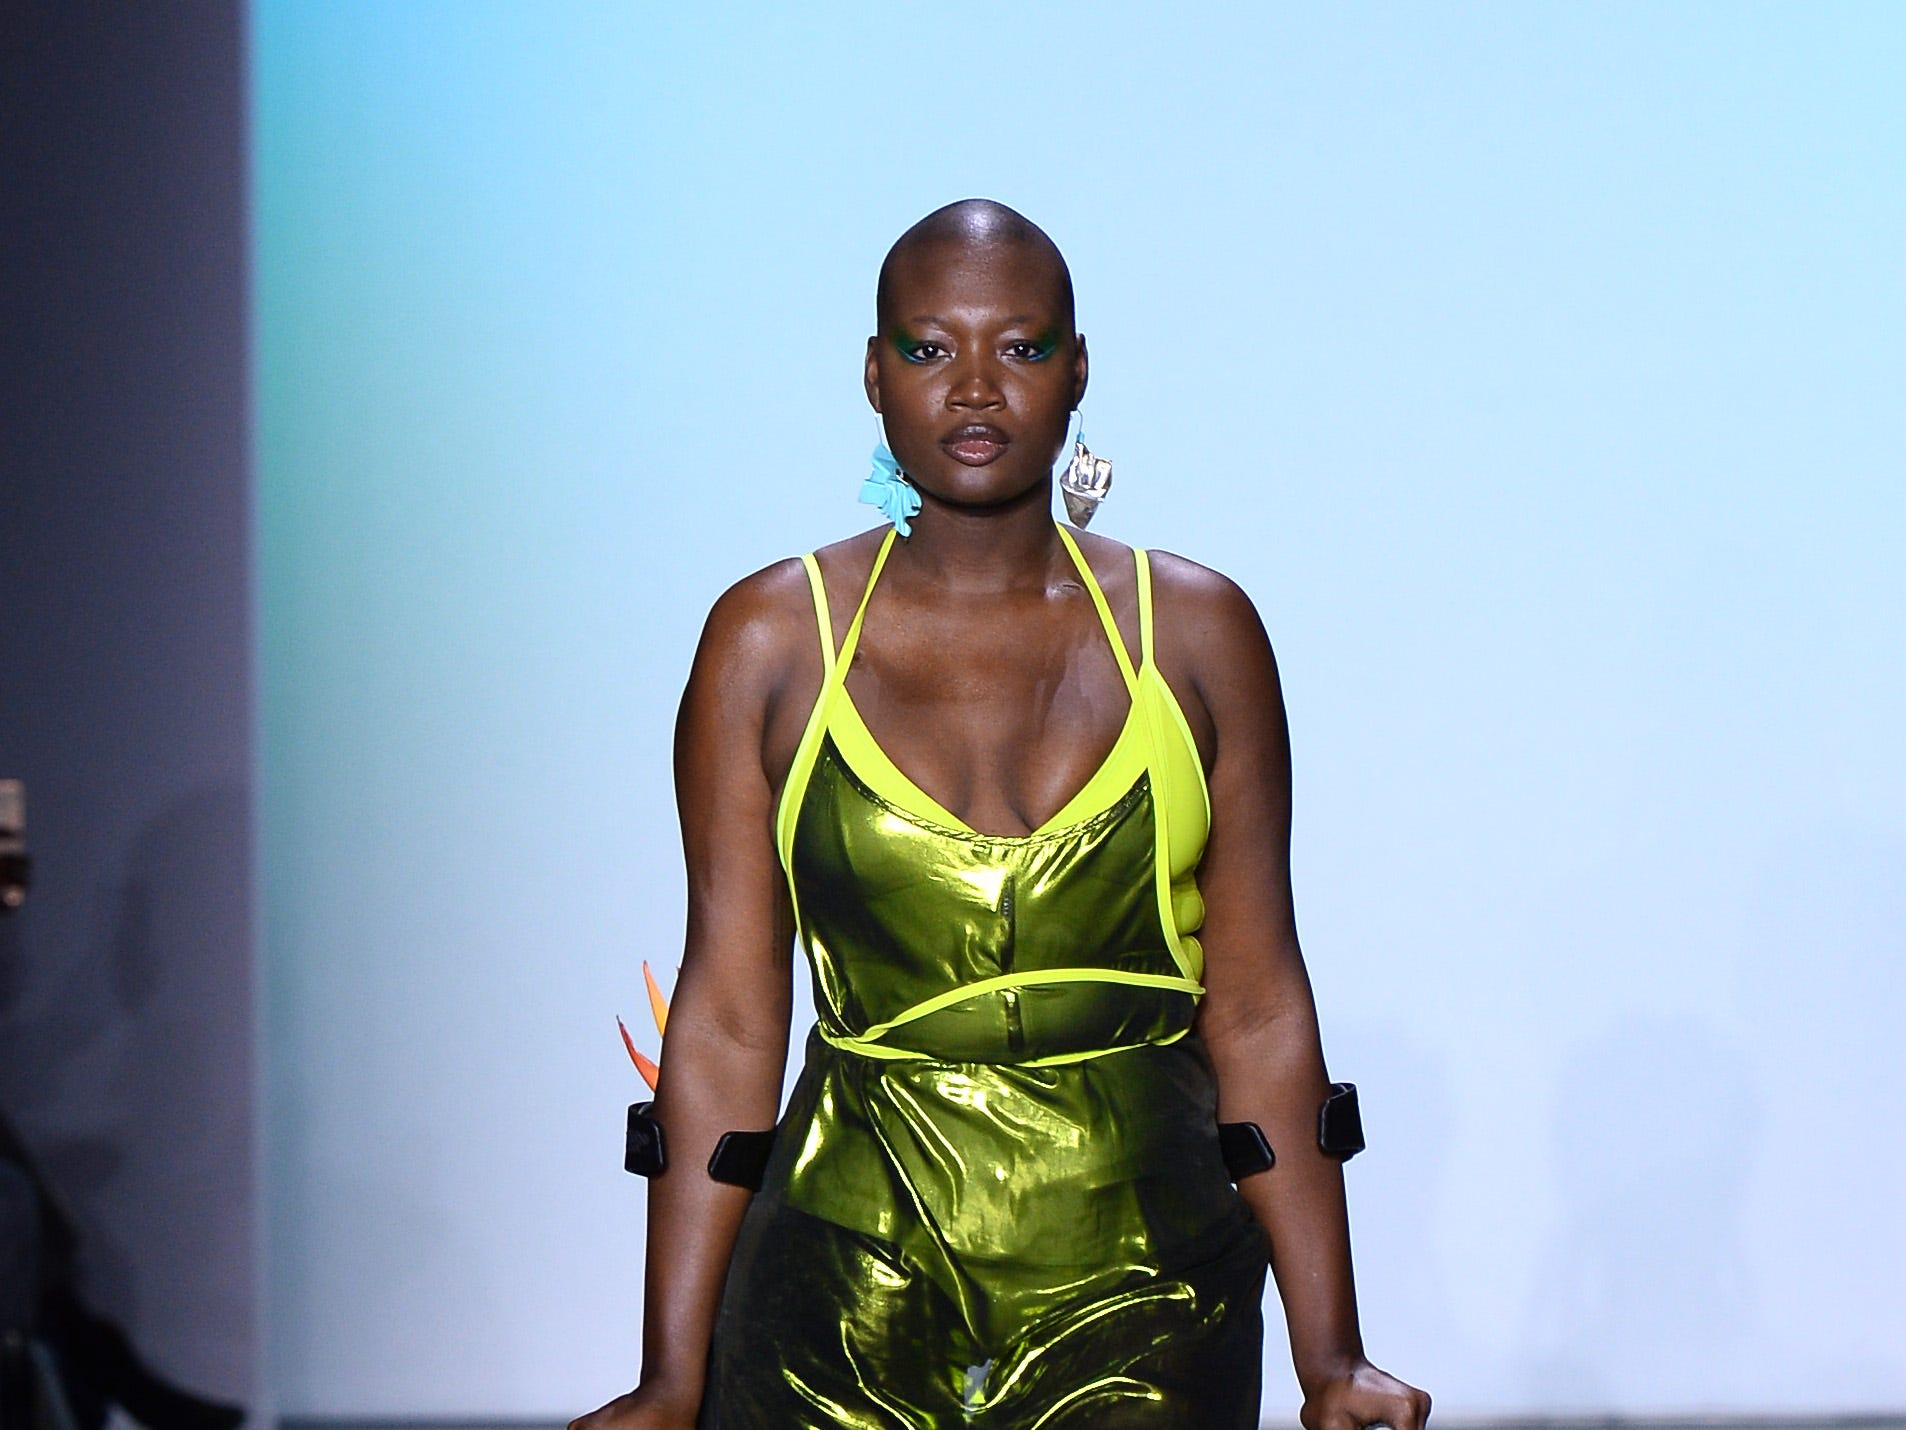 NEW YORK, NY - FEBRUARY 08:  A model walks the runway for the Chromat fashion show during New York Fashion Week: The Shows at Industria Studios on February 8, 2019 in New York City.  (Photo by Noam Galai/Getty Images for NYFW: The Shows) ORG XMIT: 775289385 ORIG FILE ID: 1095891378